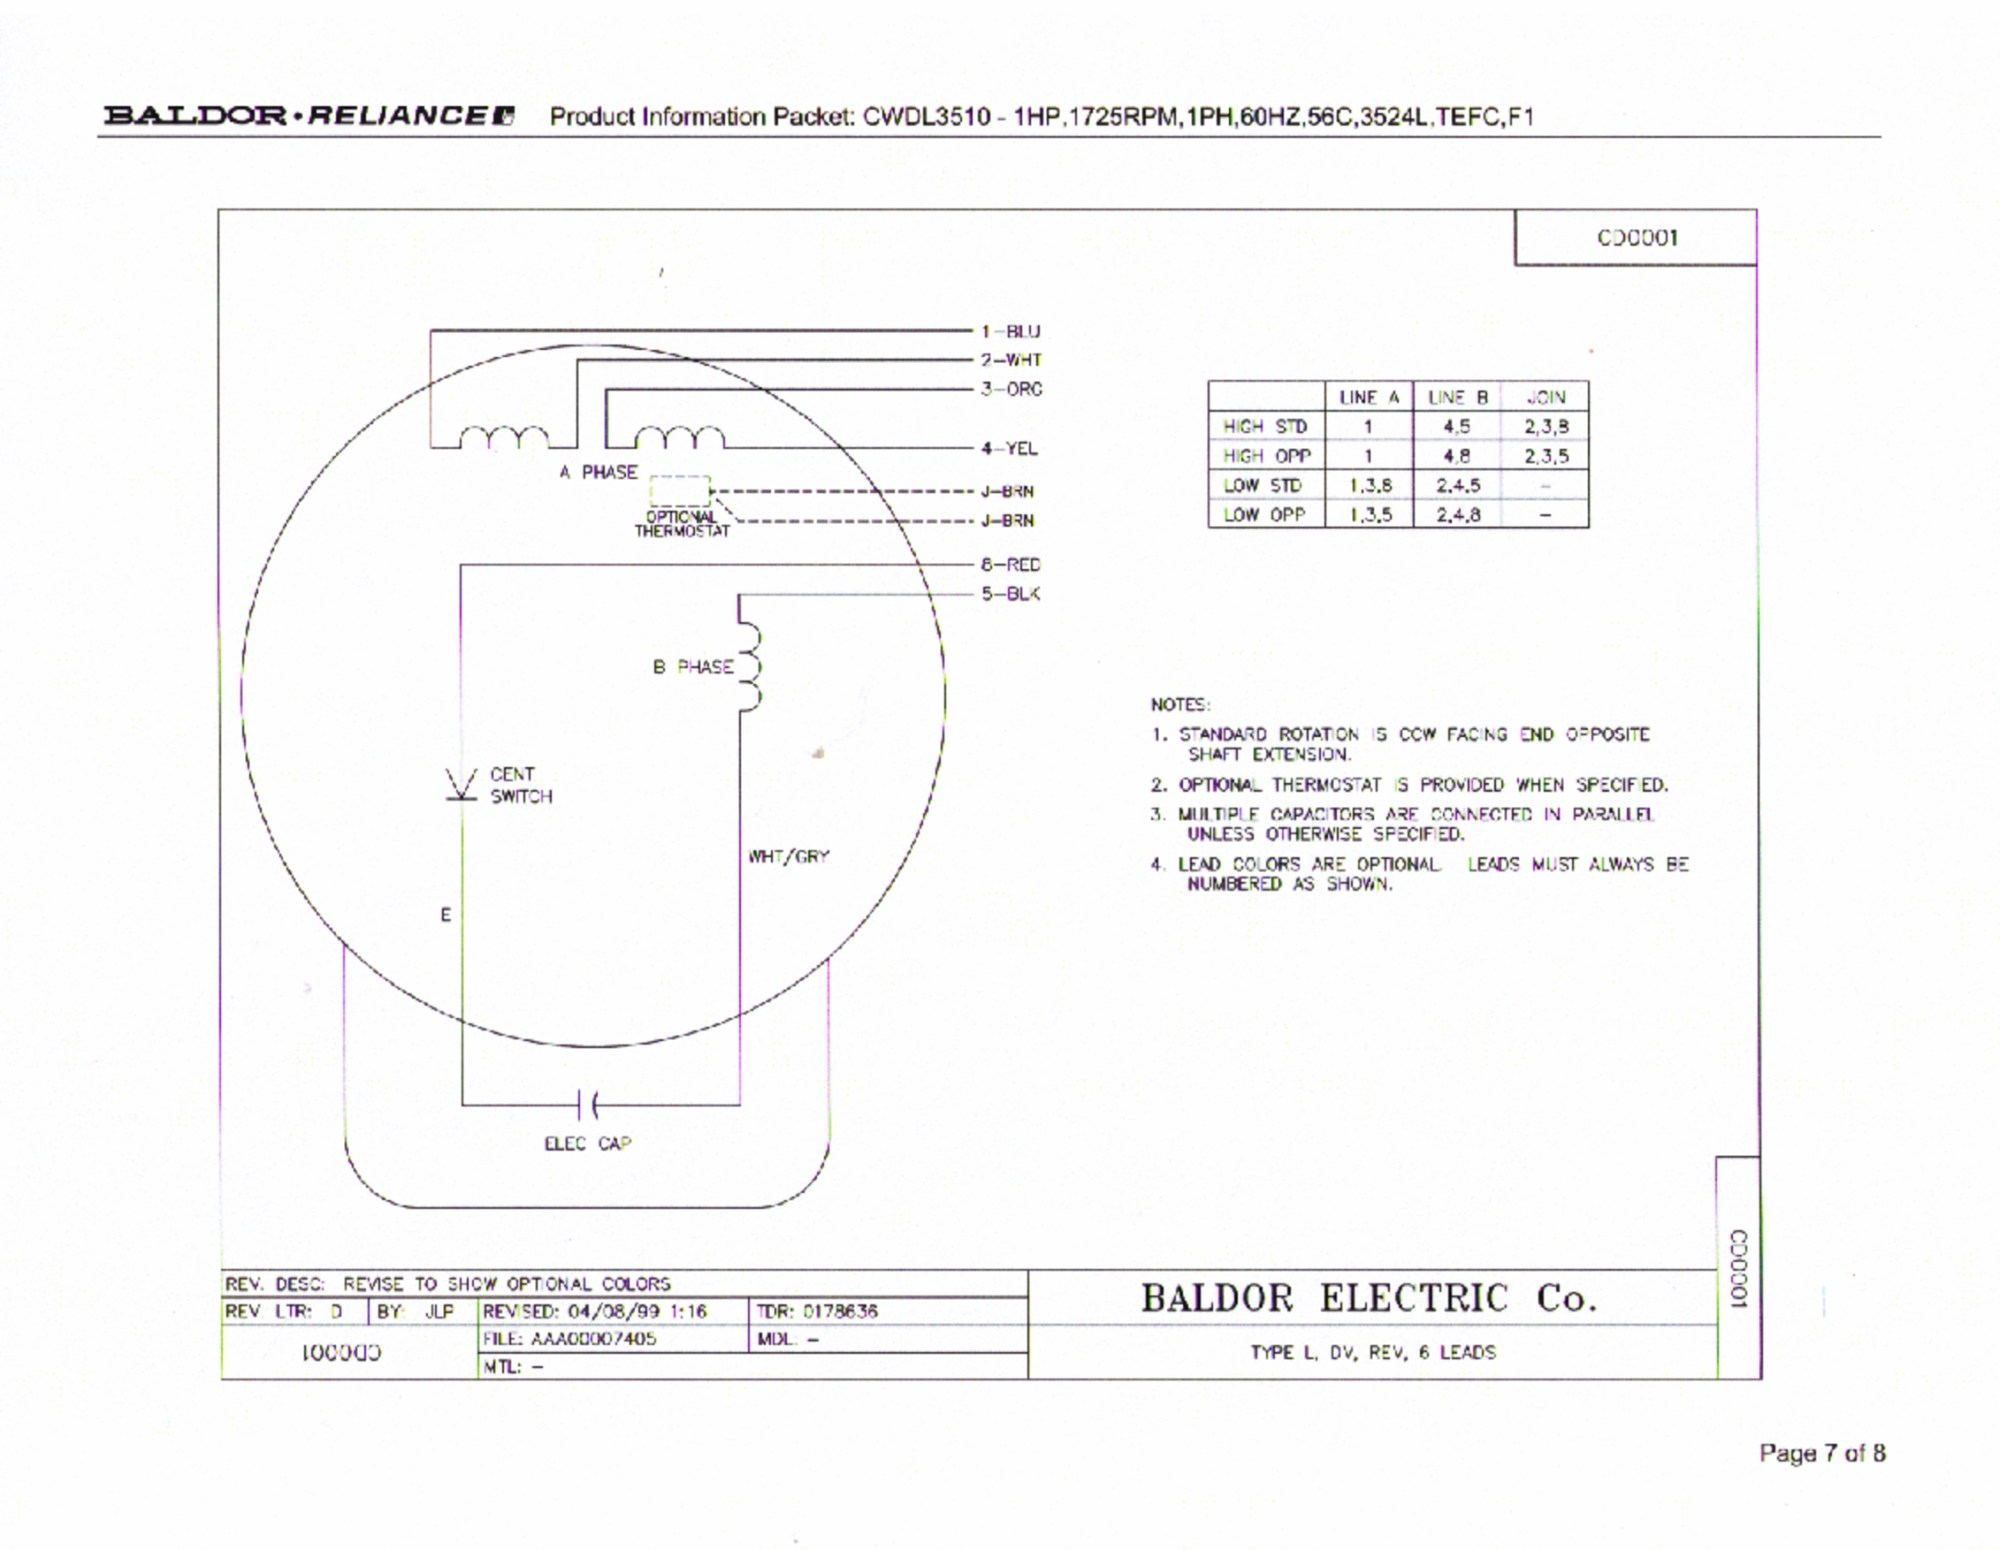 hight resolution of baldor wire diagram wiring diagram technic baldor 3 phase wiring diagram free picture